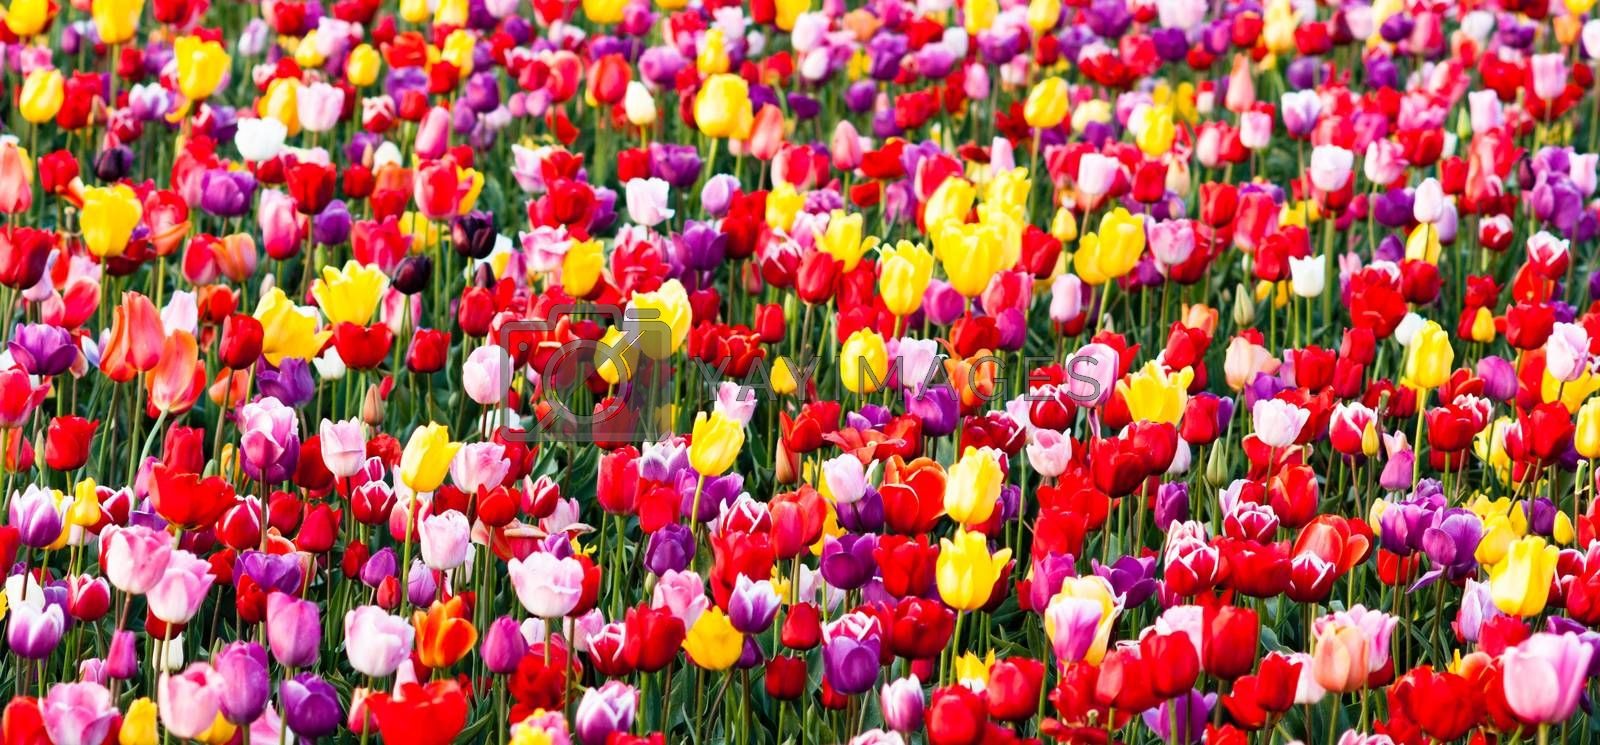 Royalty free image of Tulips Field Red Yellow Purple Bulbs Flowers Tulip Farm by ChrisBoswell